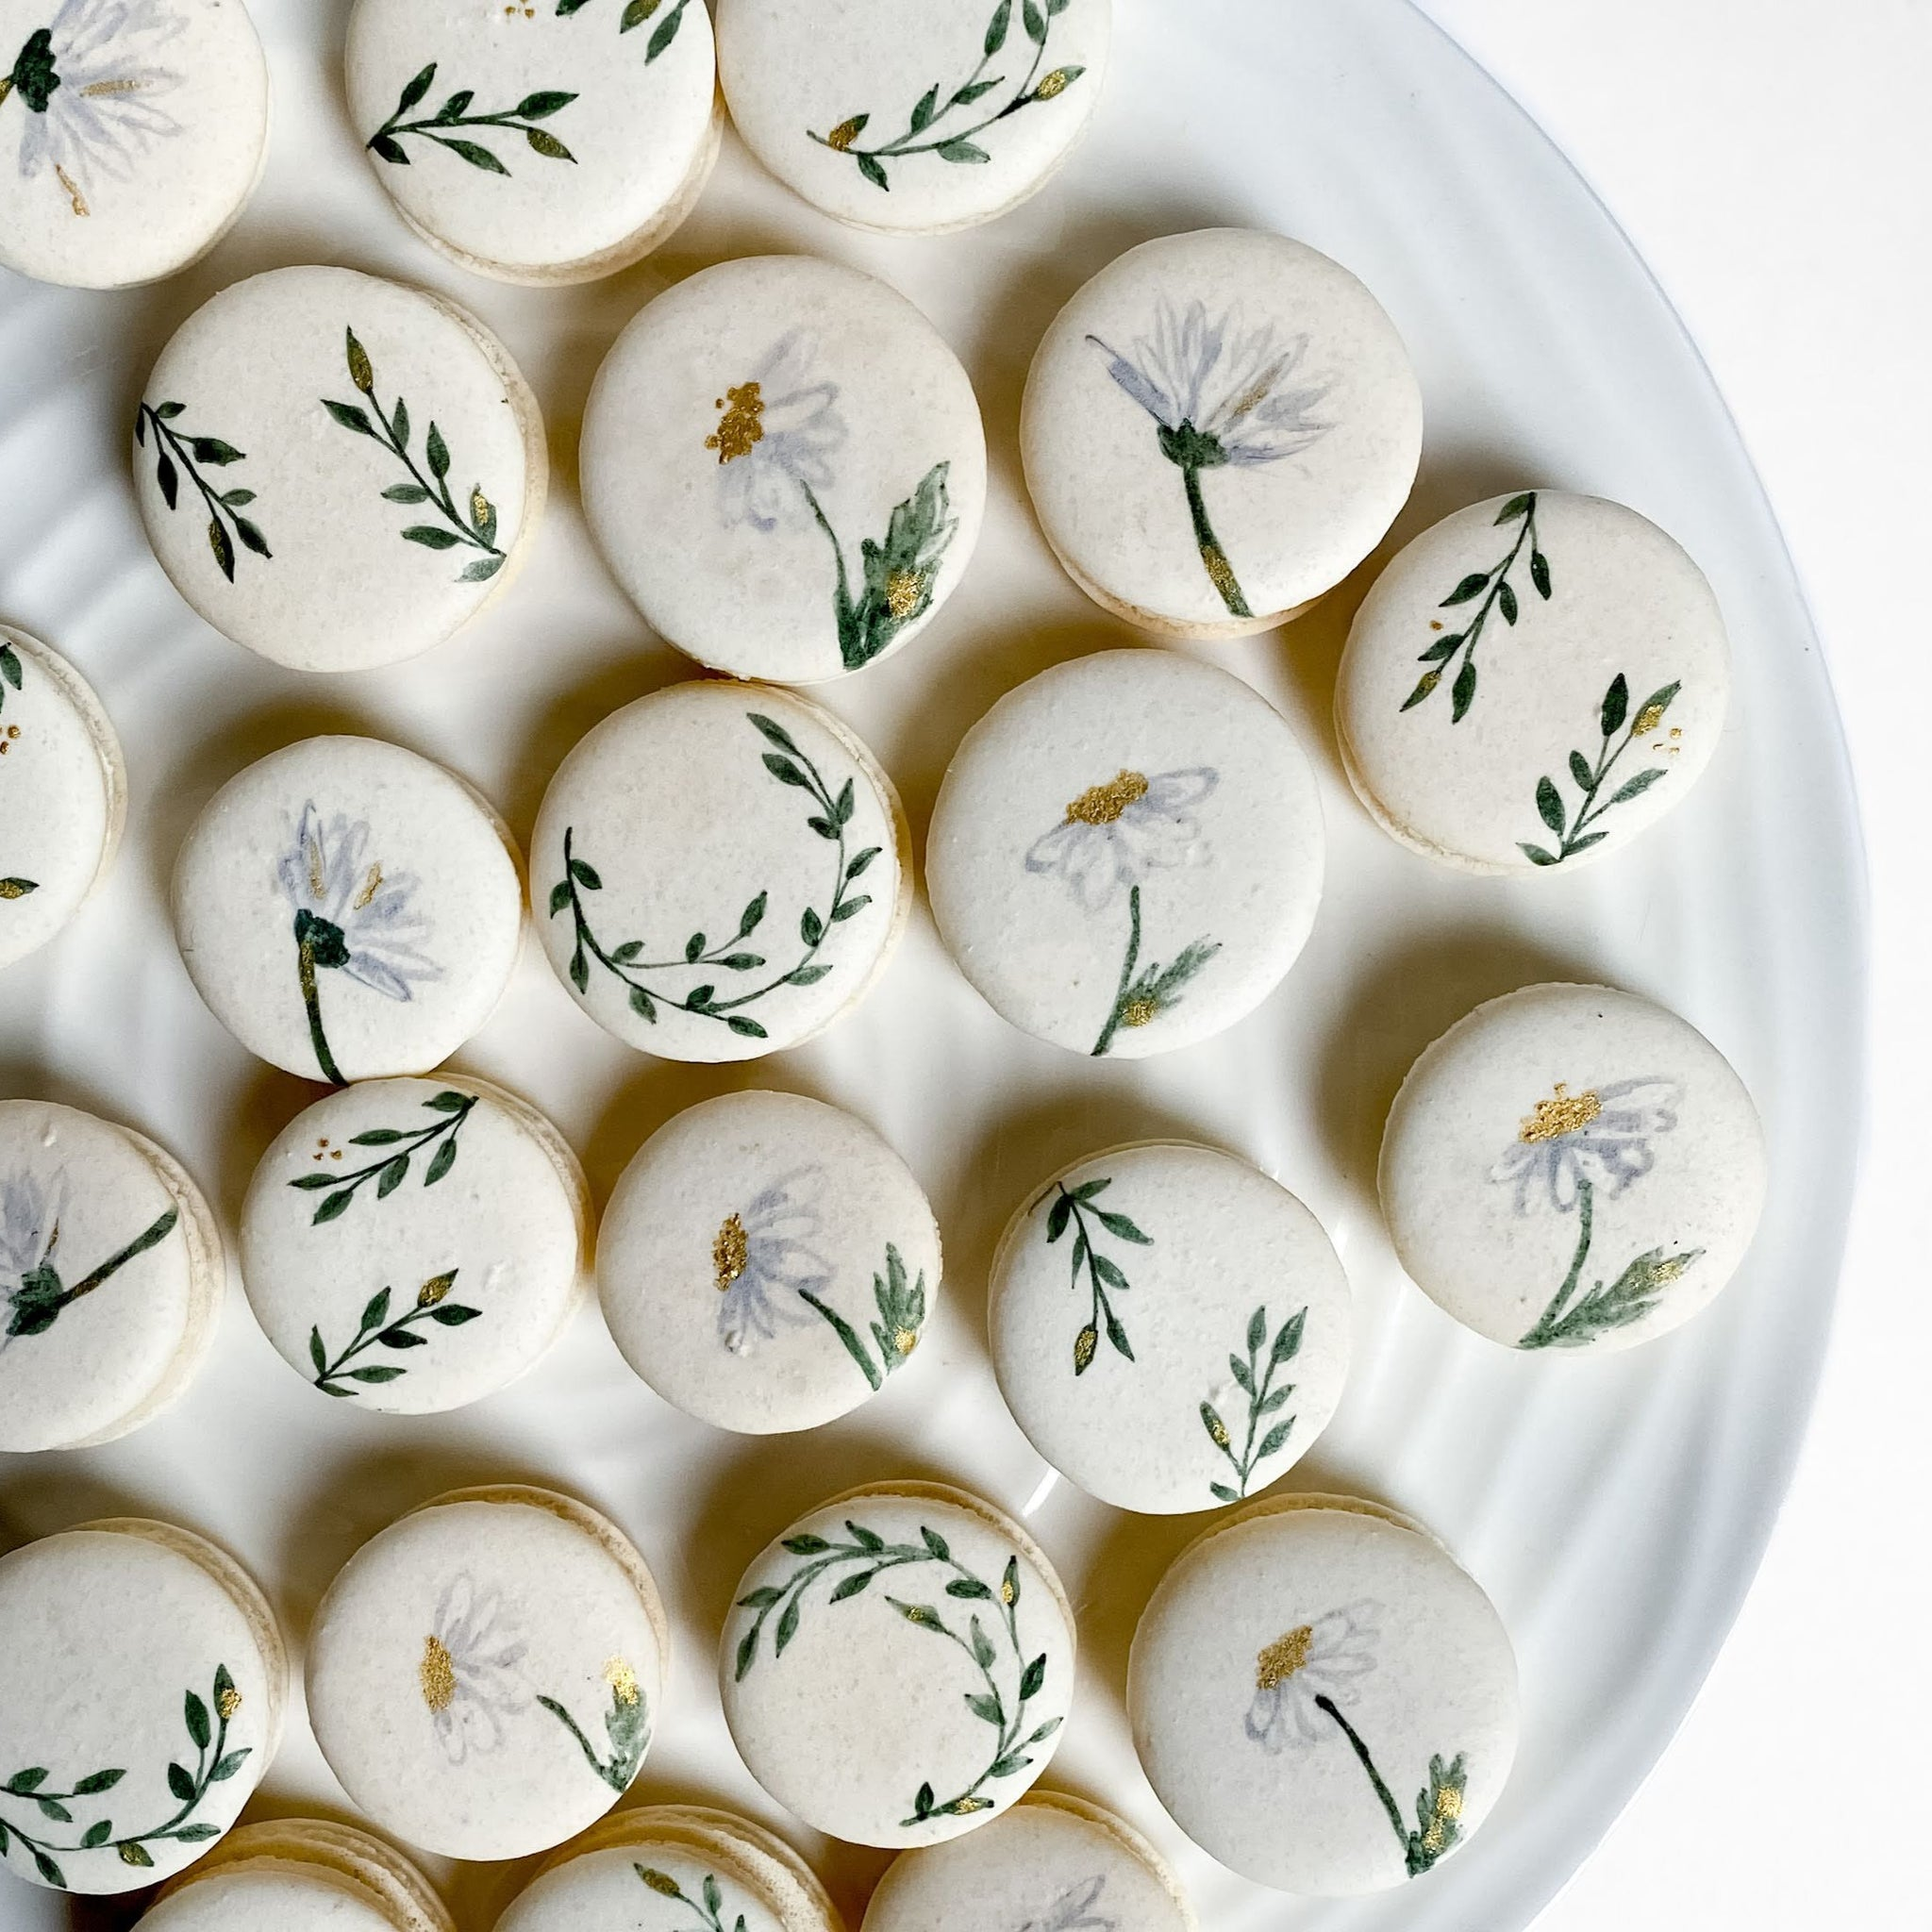 Daisy macarons, leaves